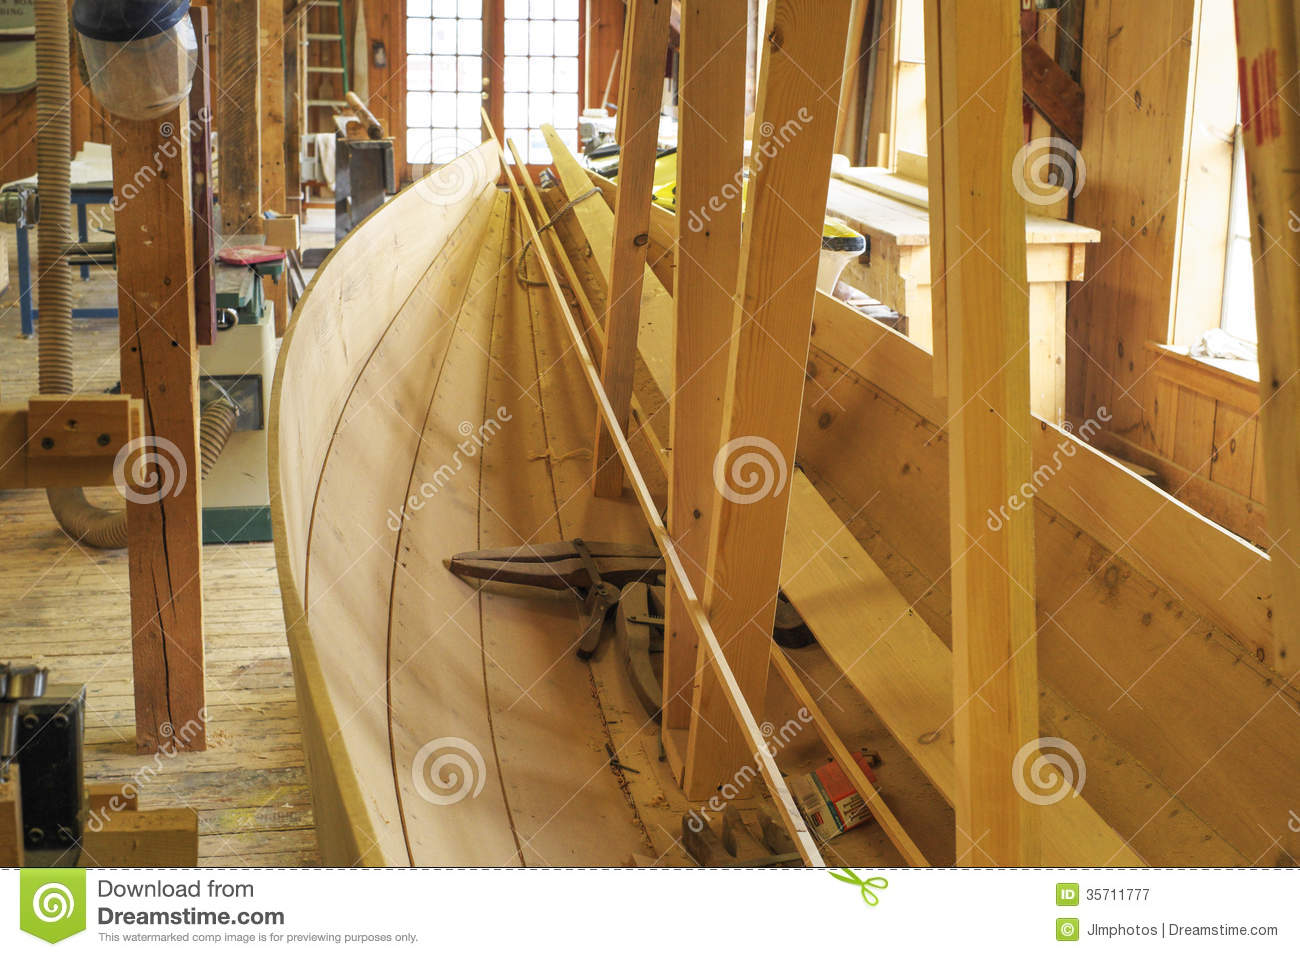 A Wooden Boat Being Built Royalty Free Stock Photography - Image: 35711777